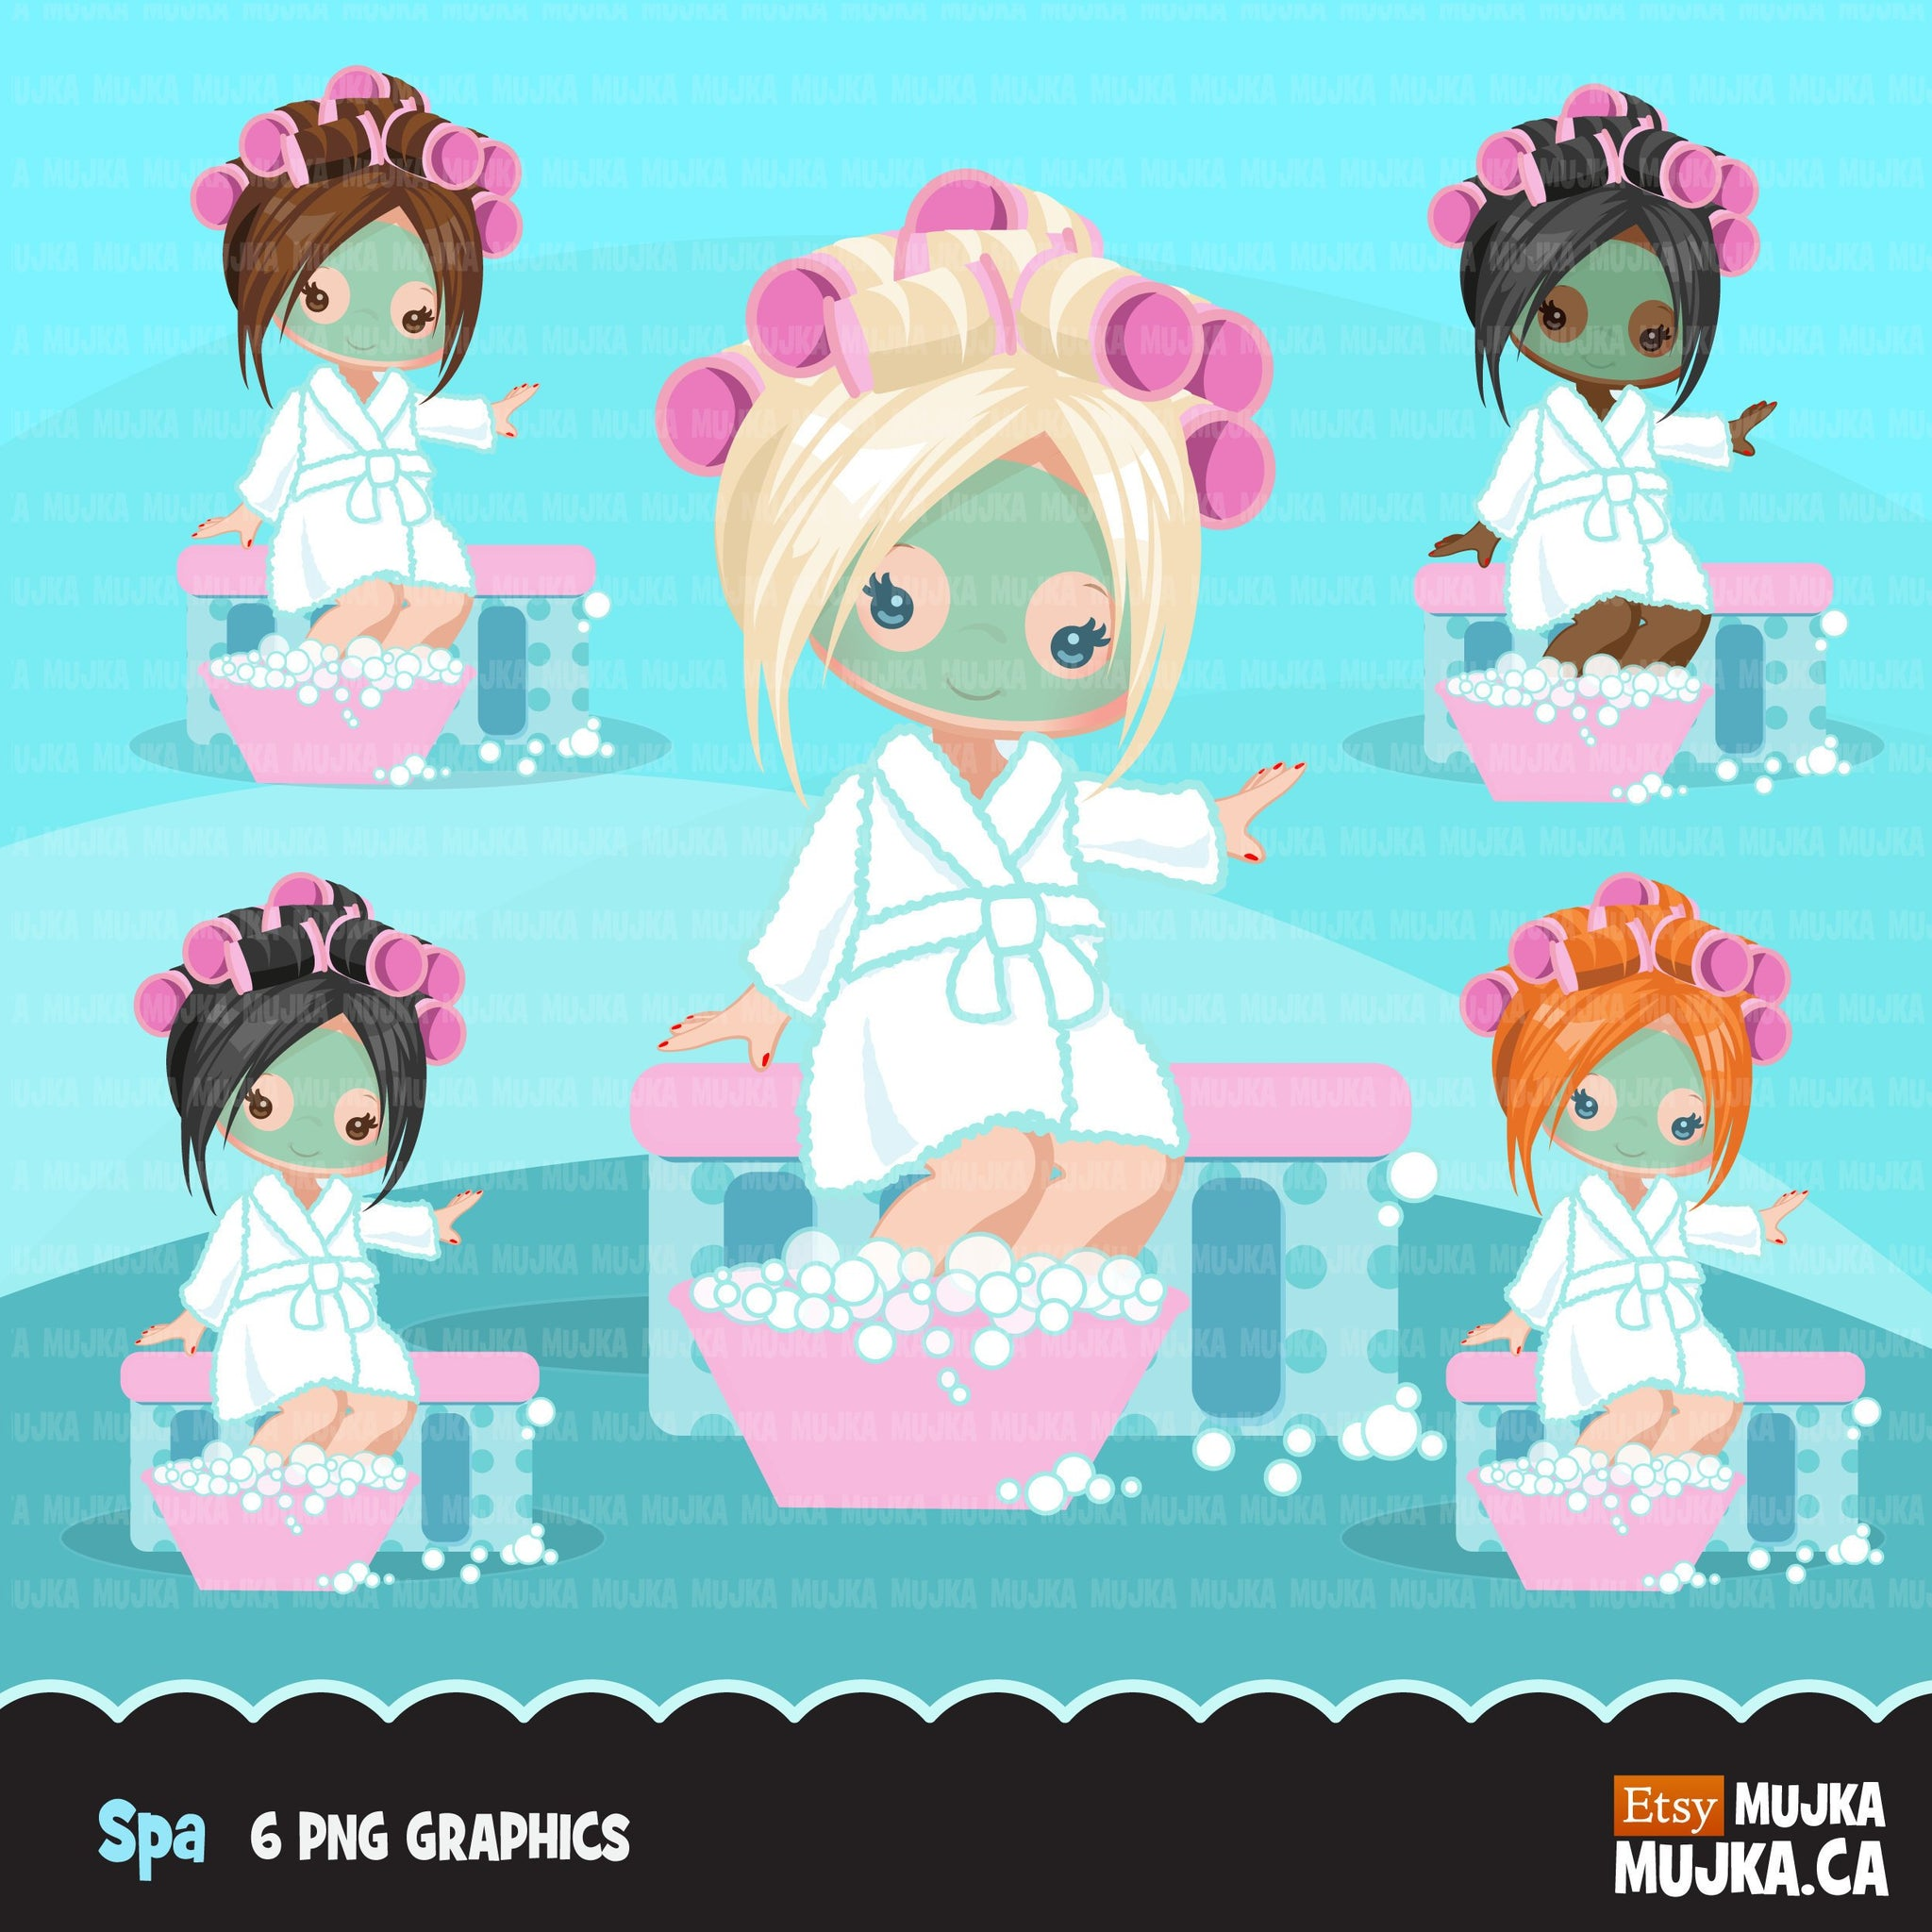 Spa party girl clipart with face mask graphics